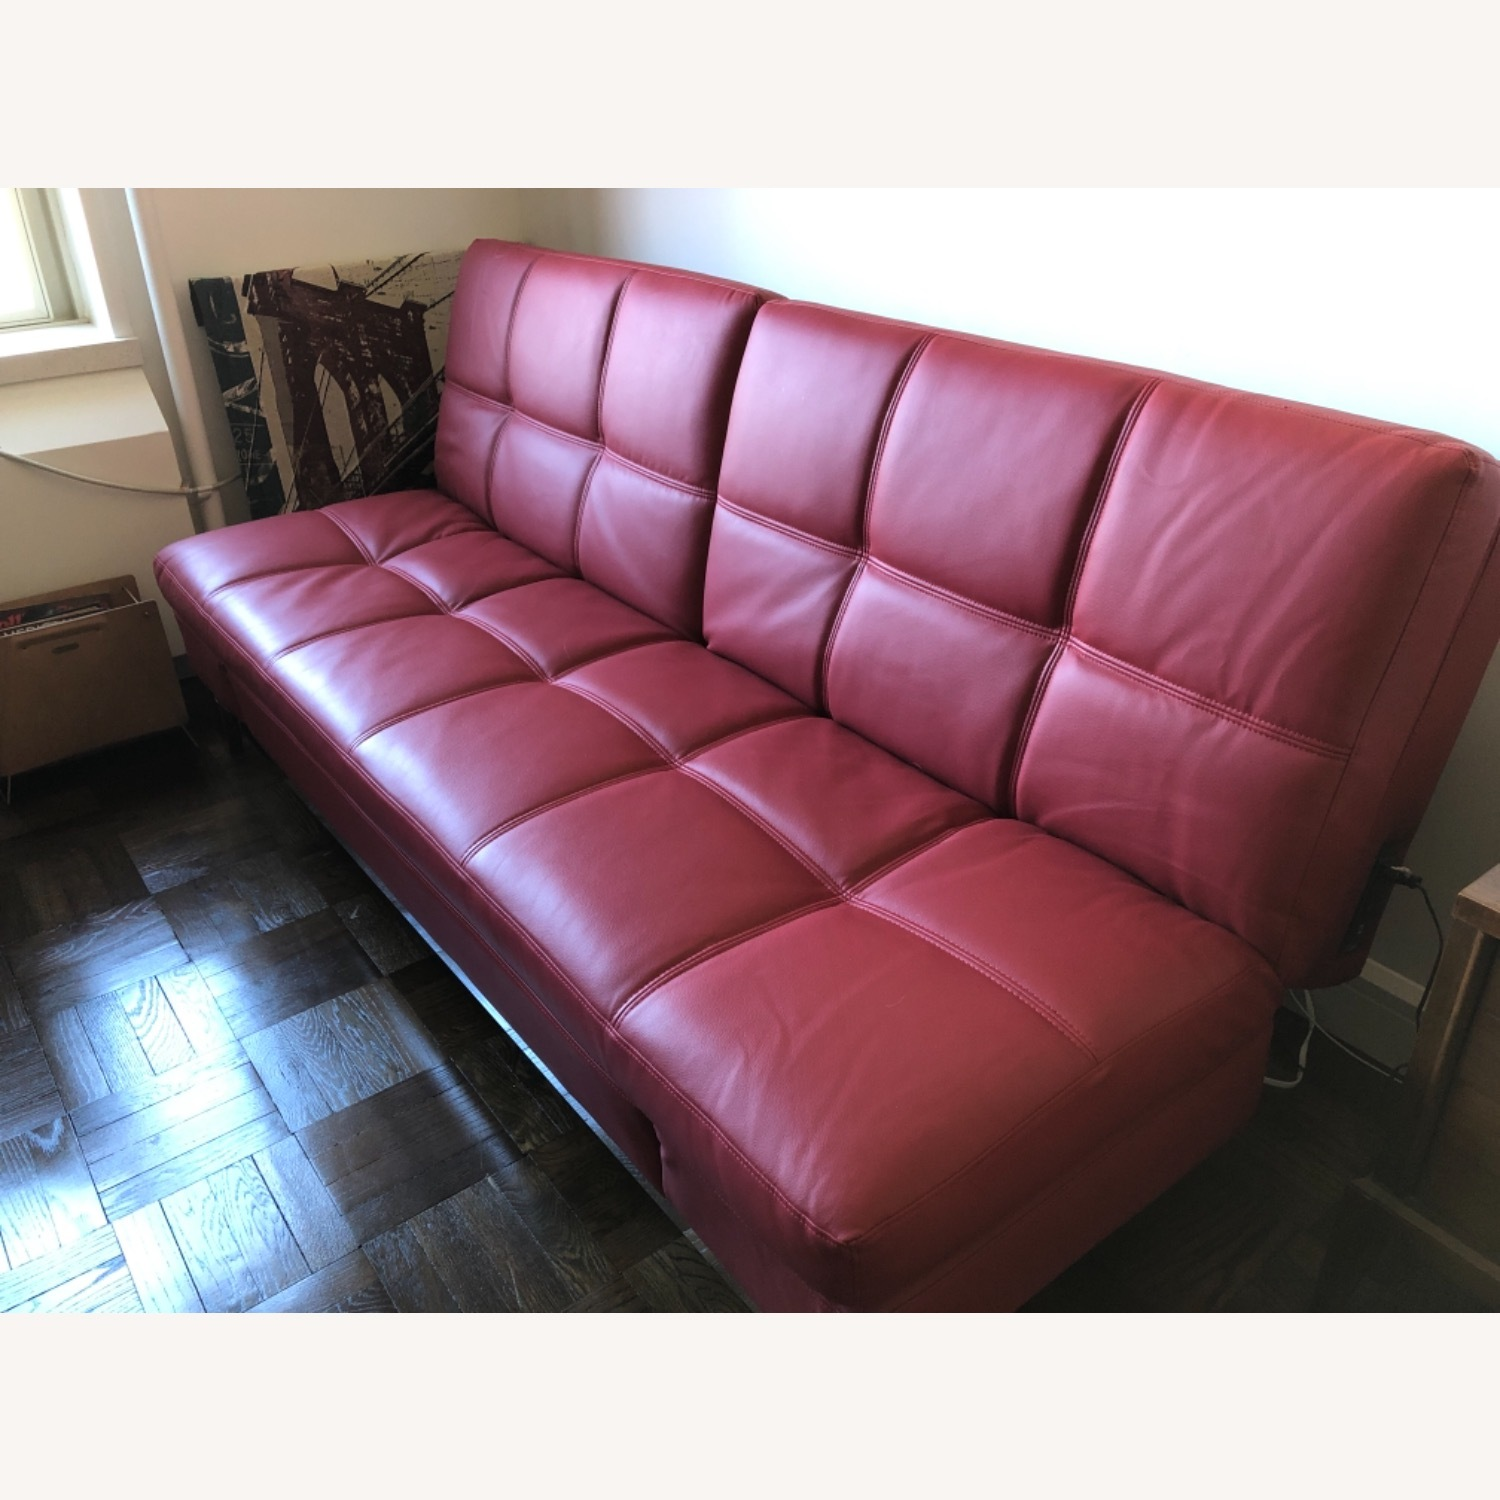 Coddle Red Leather Convertible Couch - image-2